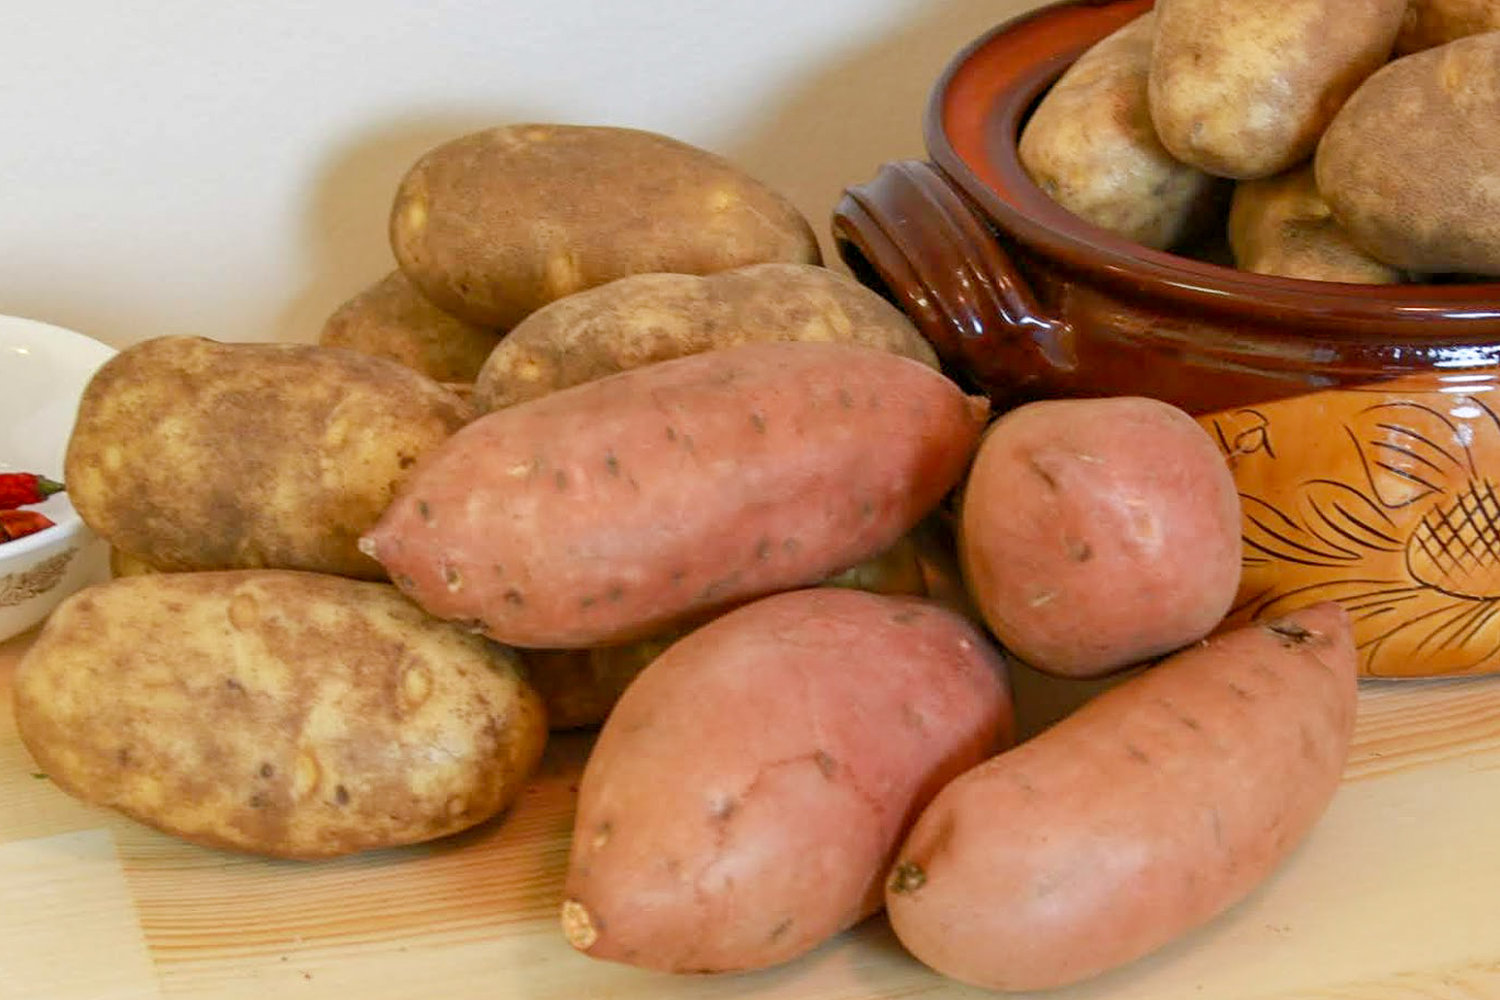 An overflowing container of russet potatoes and sweet potatoes, destined for a baked potato party.